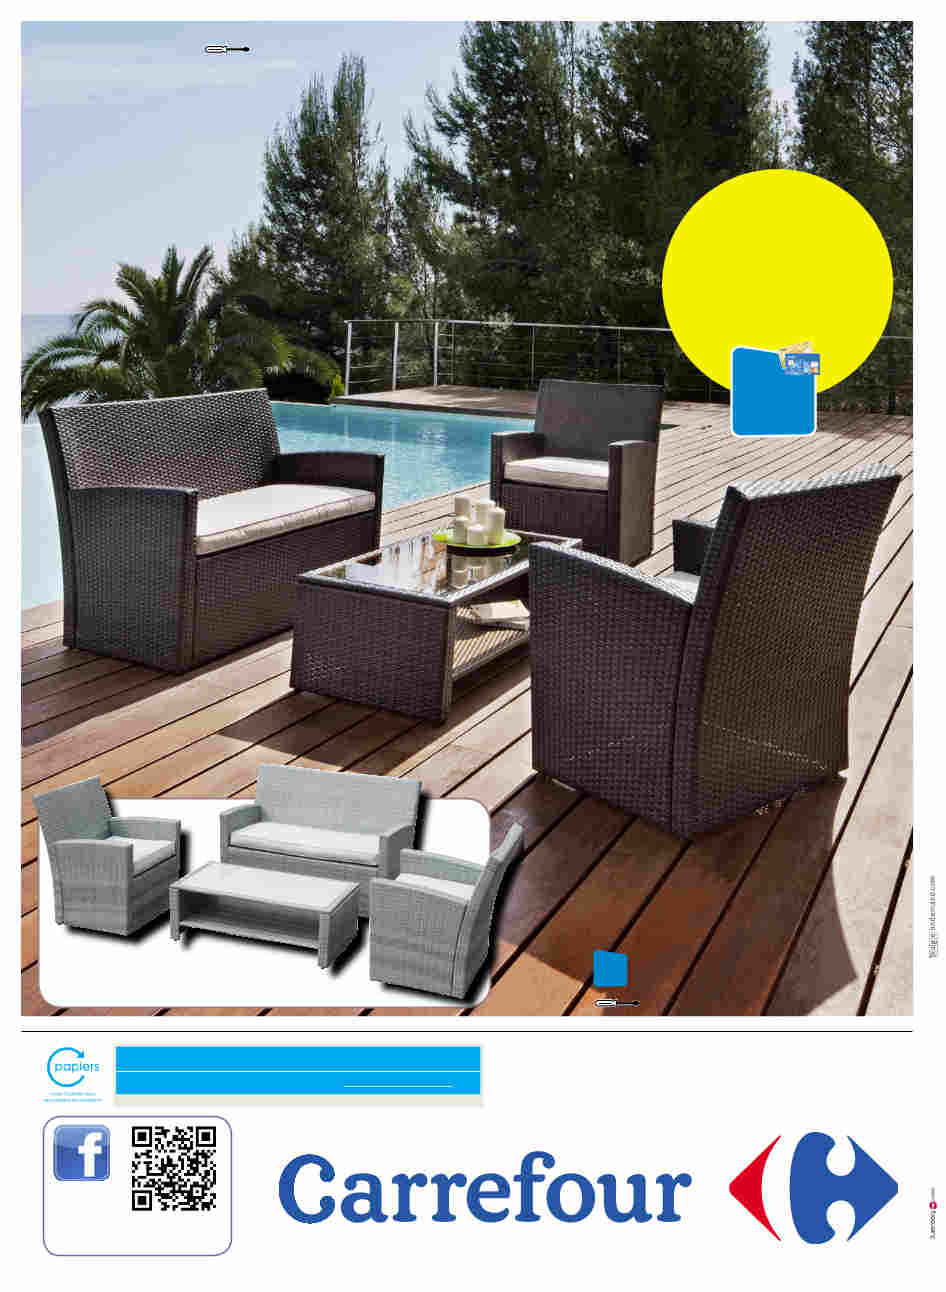 salon salon de jardin elixir meilleures id es pour la conception et l 39 ameublement du jardin. Black Bedroom Furniture Sets. Home Design Ideas